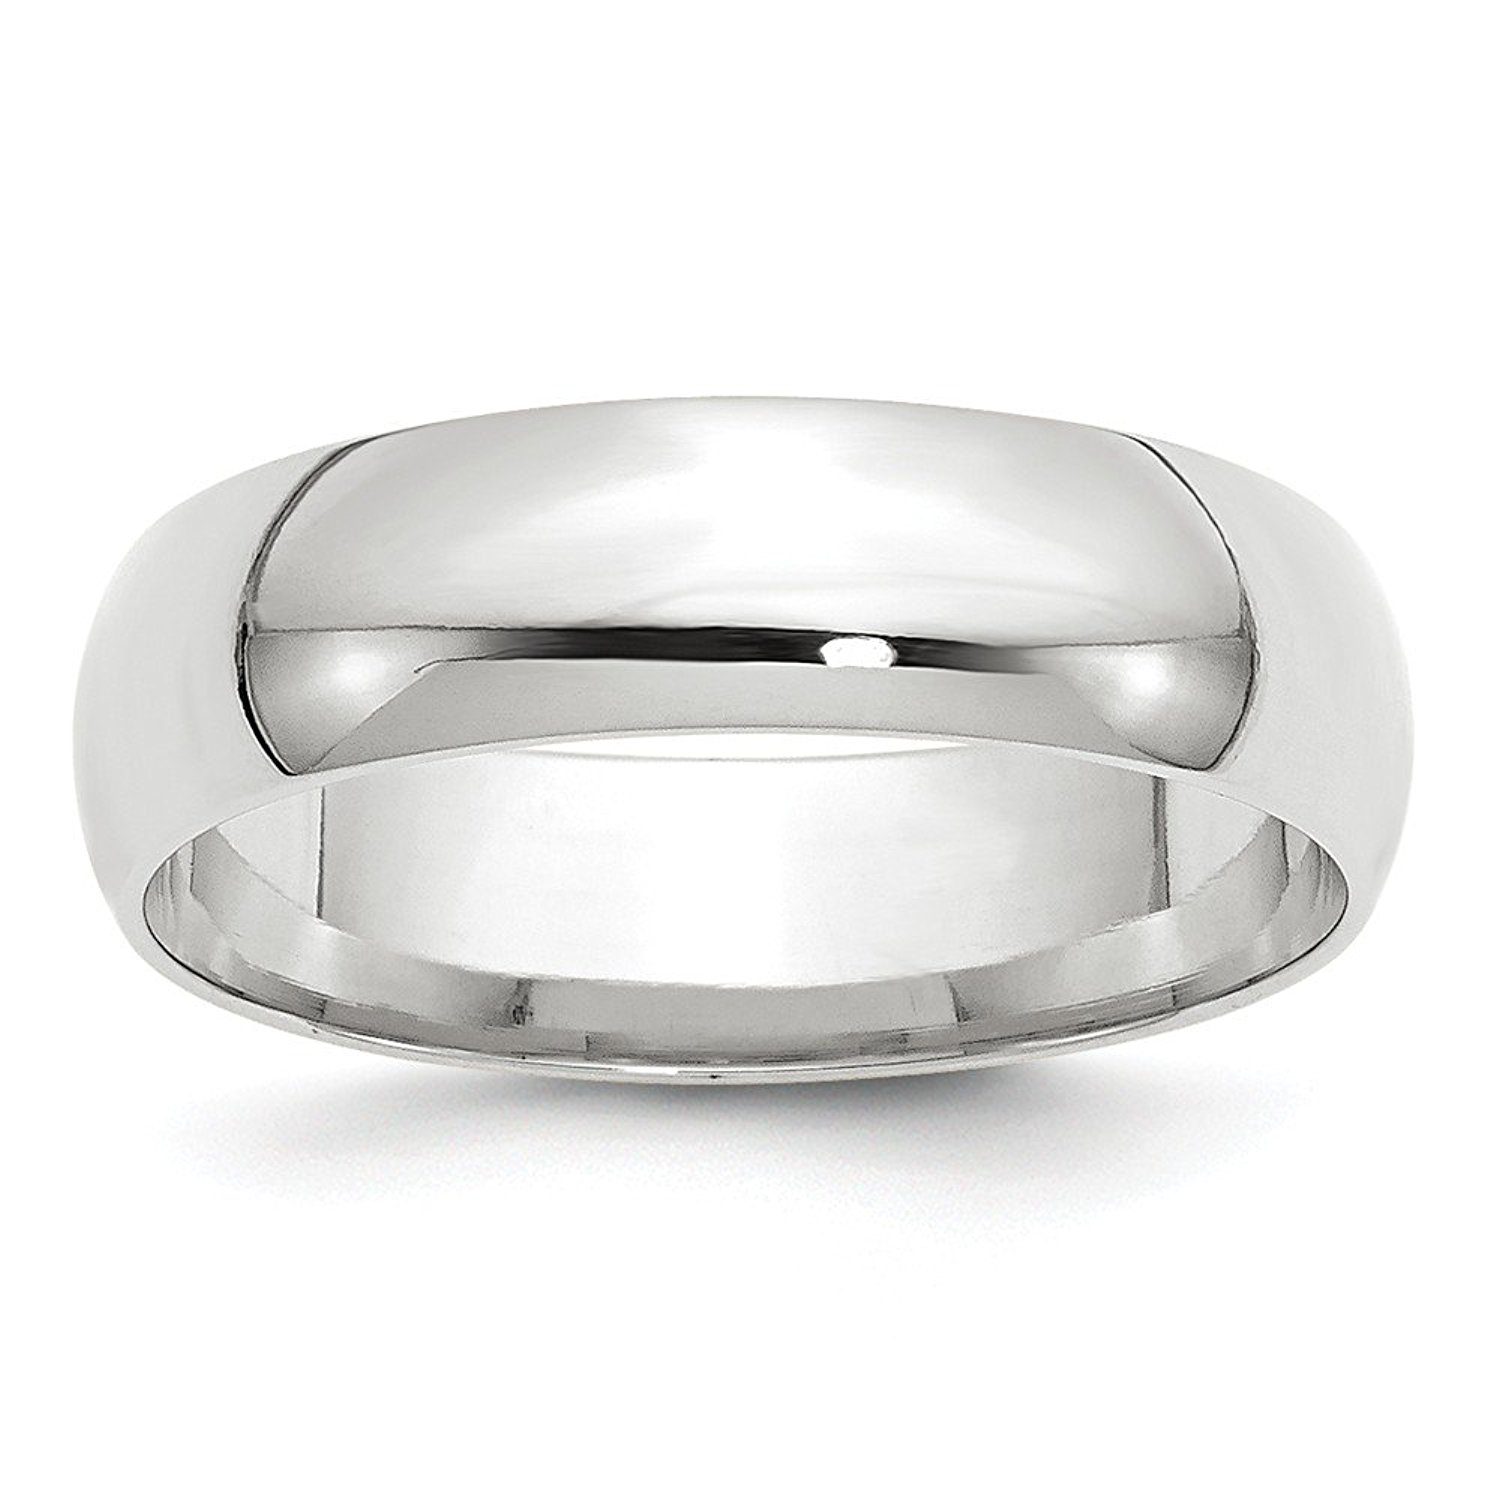 Perfect Jewelry Gift 14KW 6mm LTW Comfort Fit Band Size 9.5